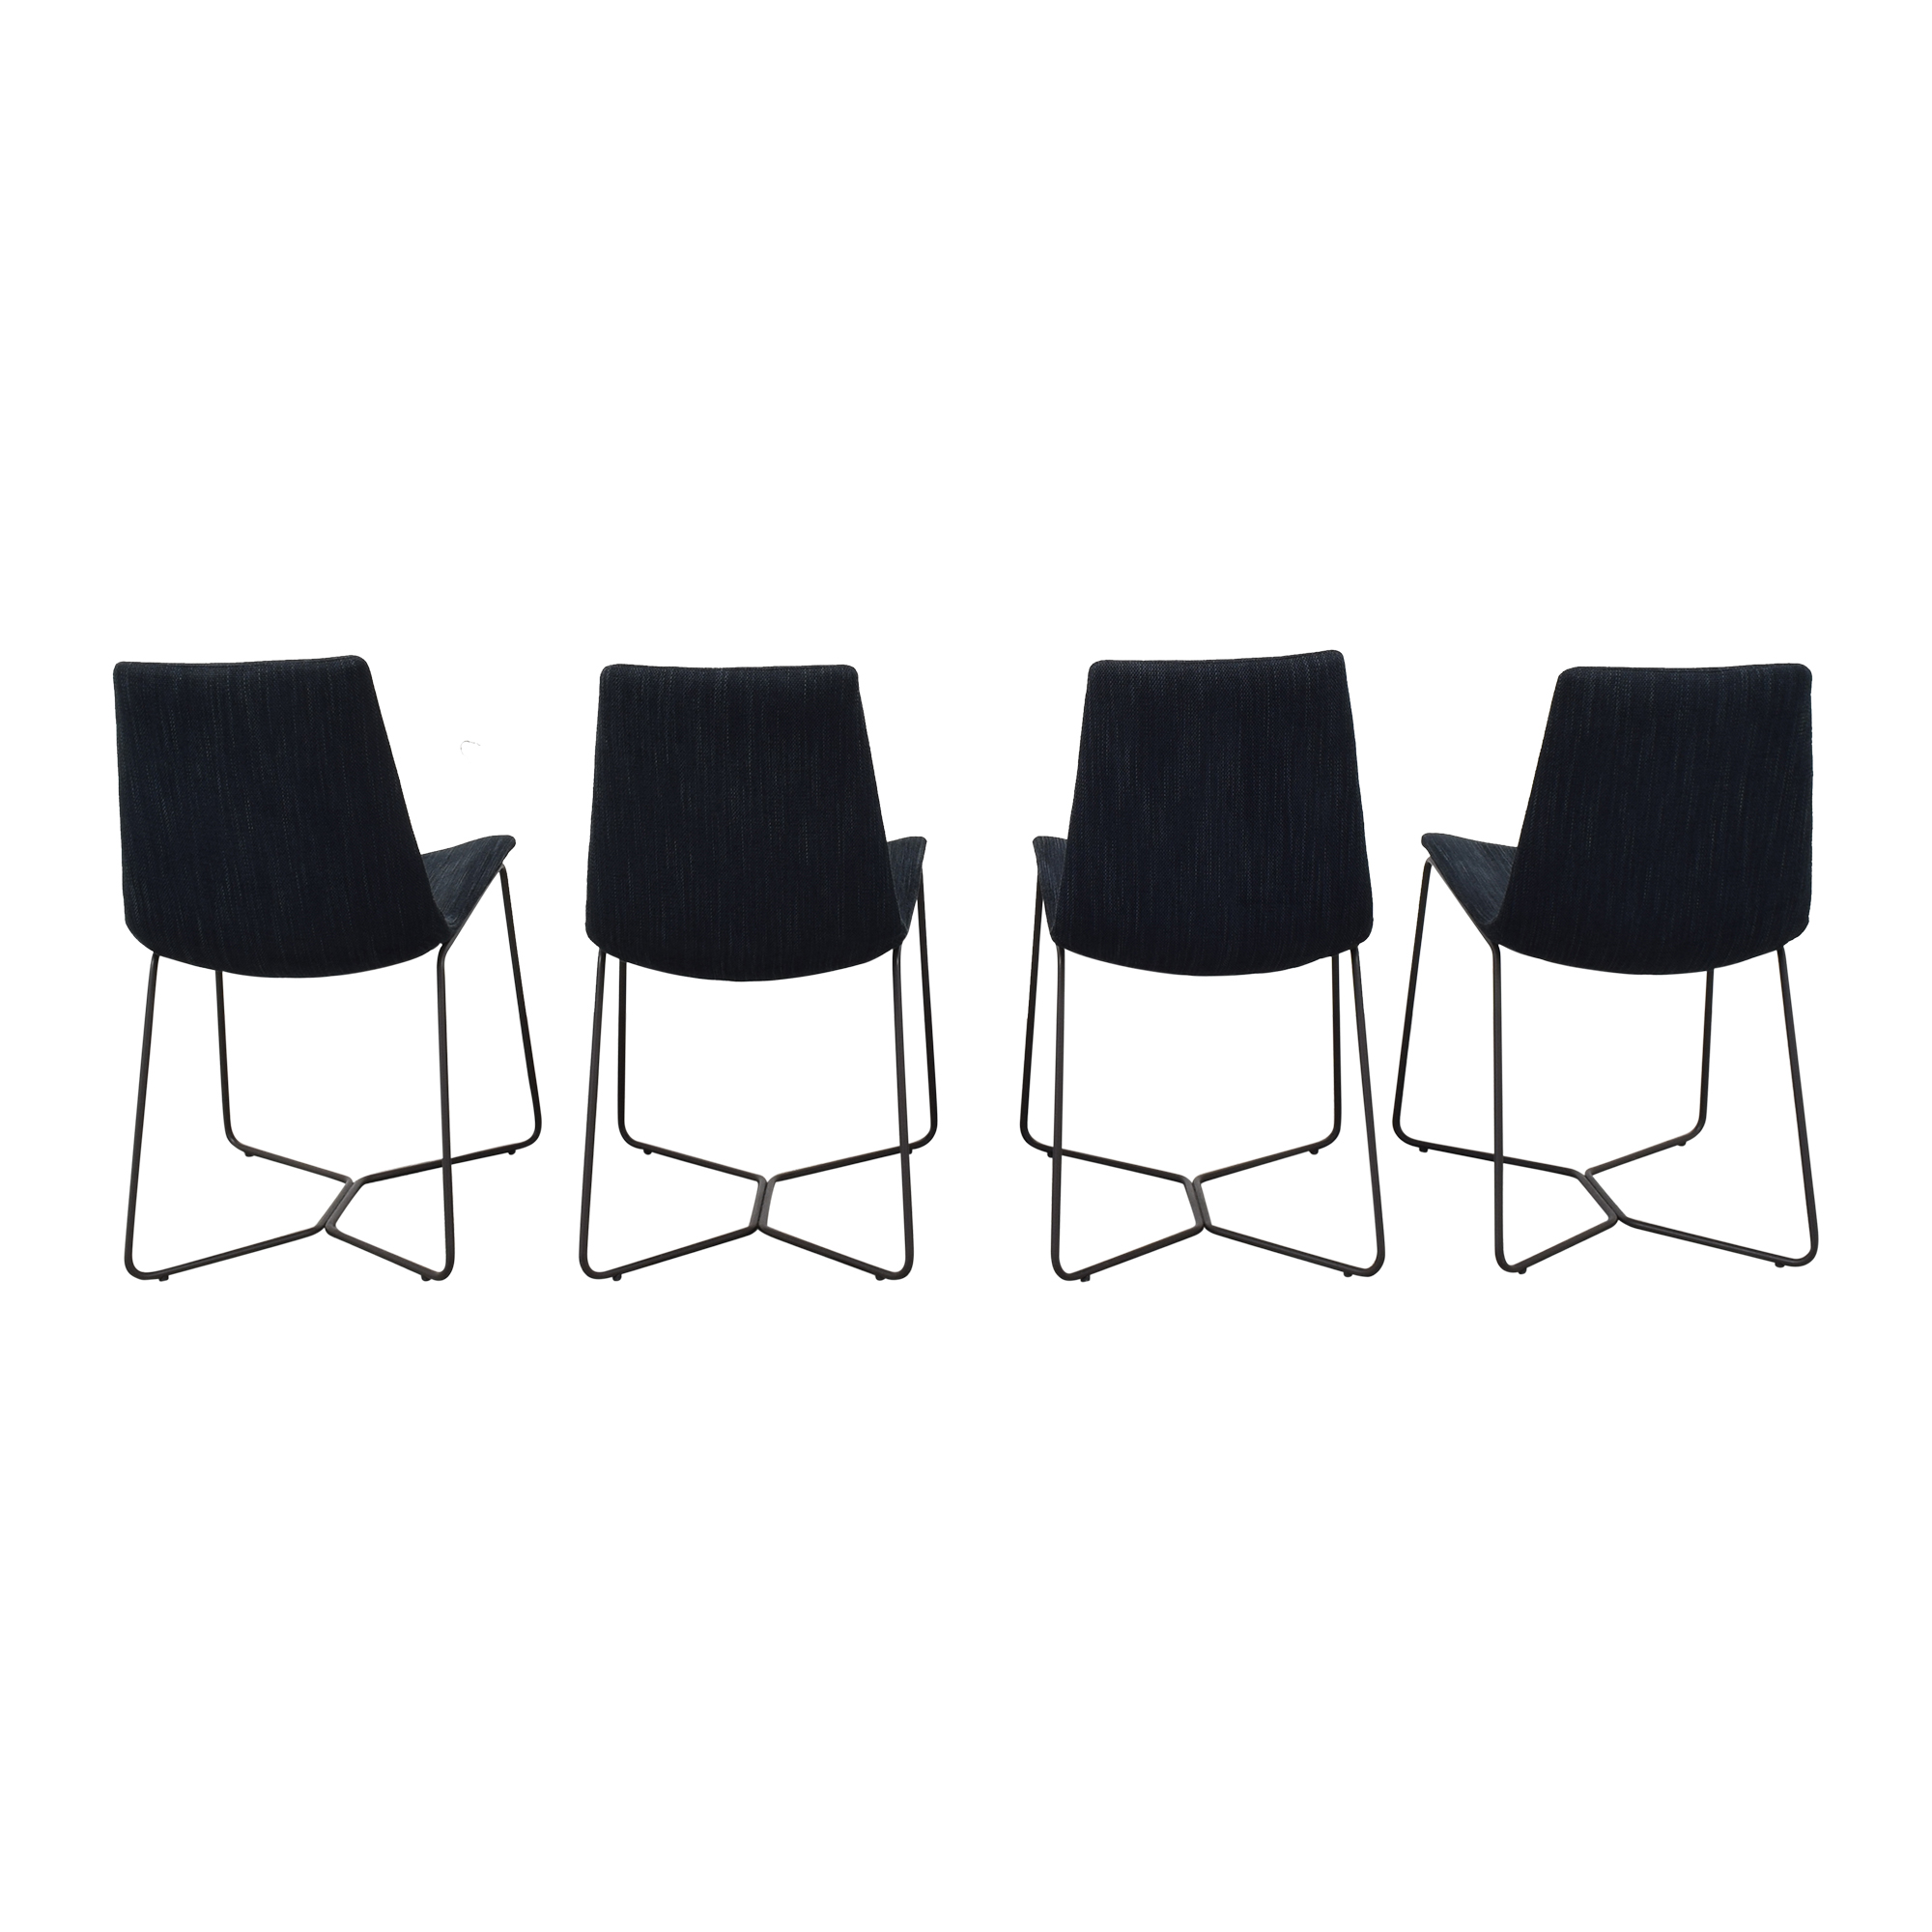 West Elm West Elm Slope Upholstered Dining Chairs on sale